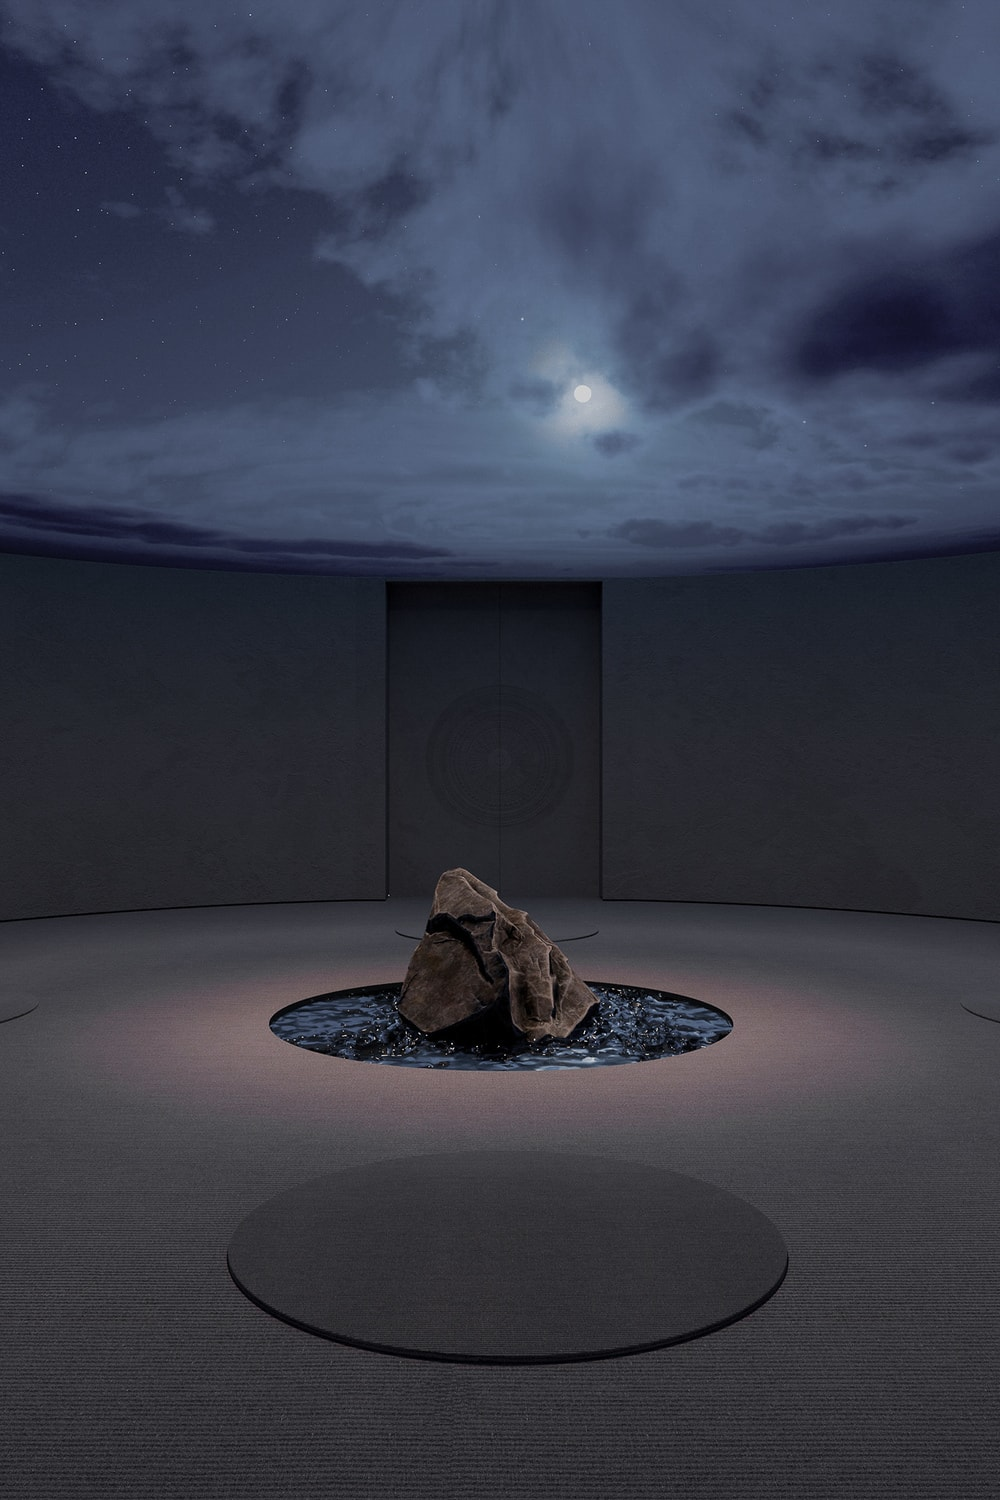 The ceiling of the meditation room can also be changed into a rainy sky scenery.